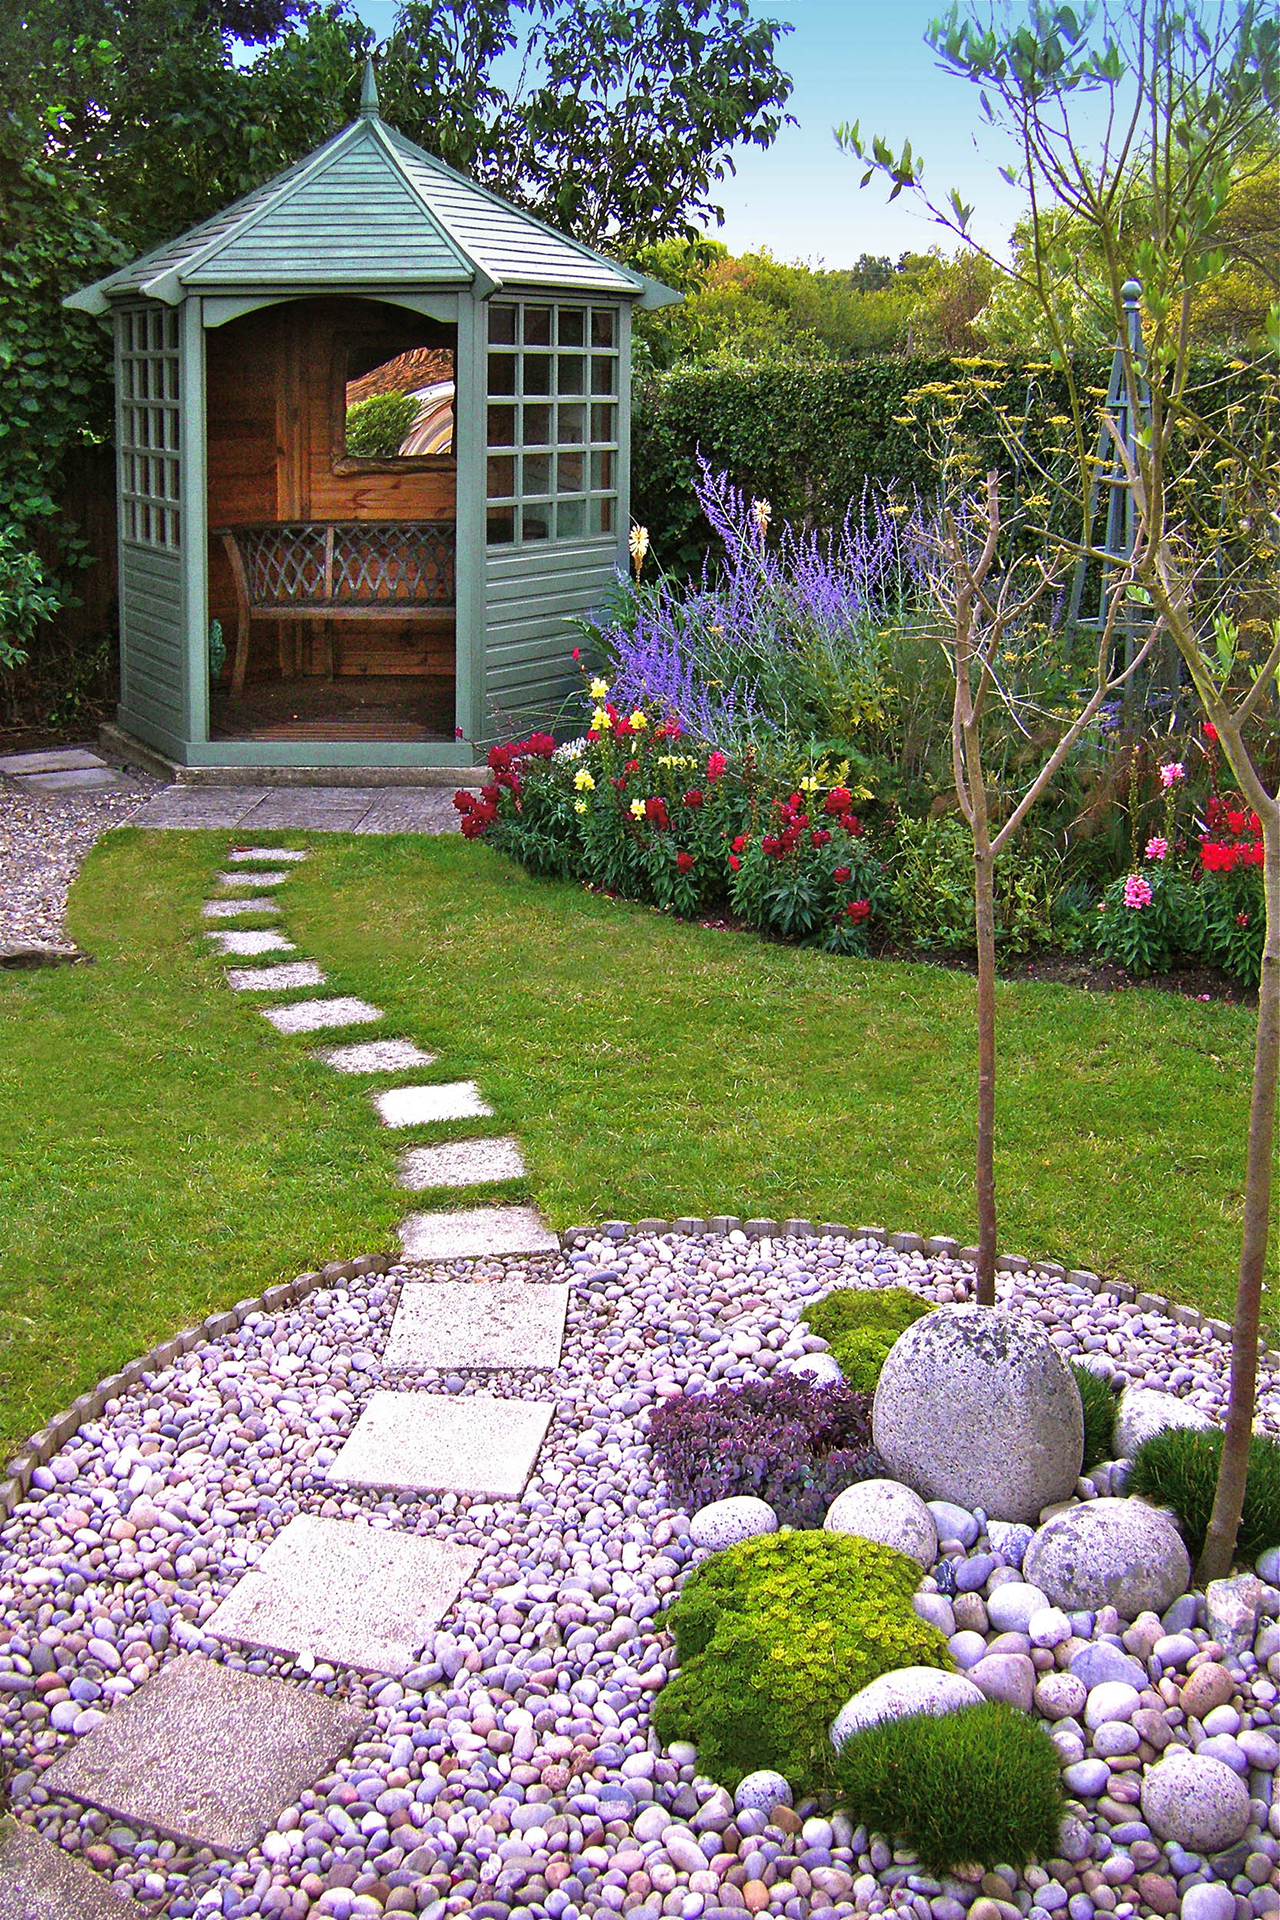 50 Best Backyard Landscaping Ideas And Designs In 2019 with Landscaping Your Backyard